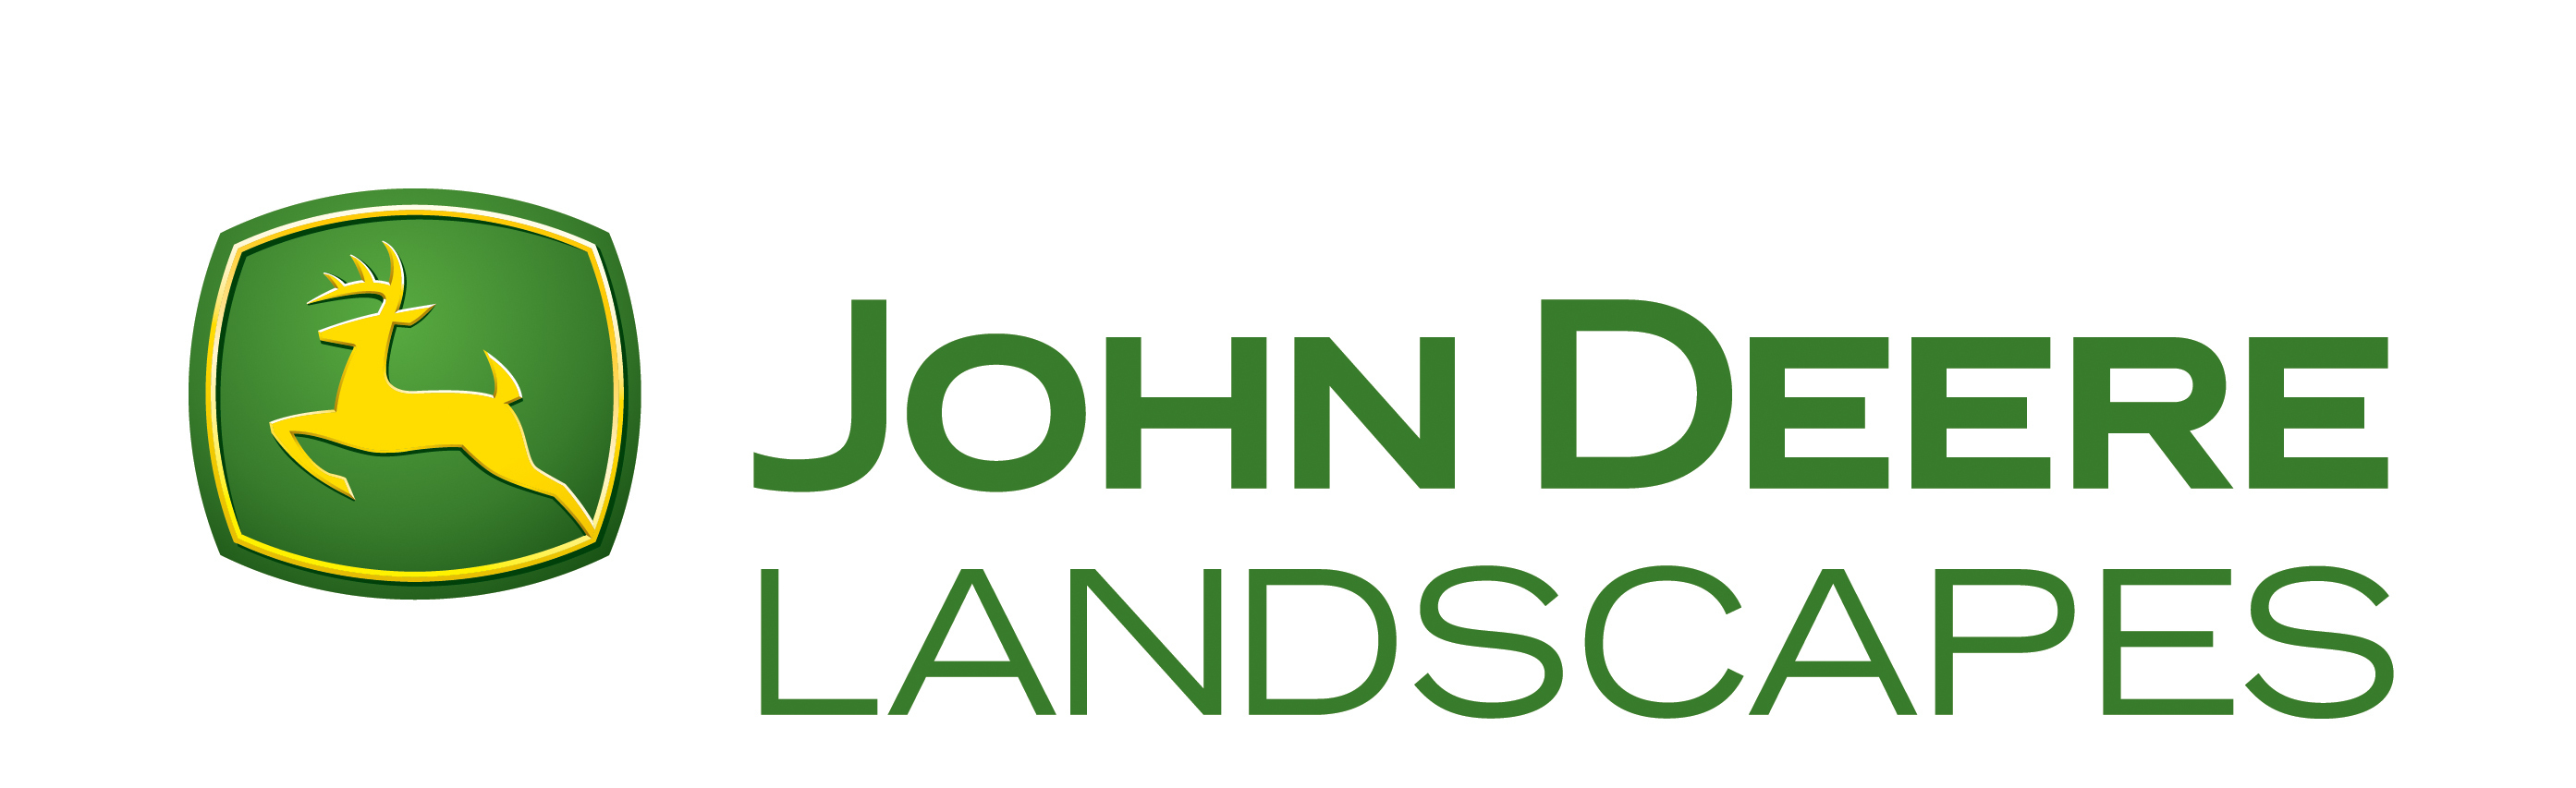 John Deere Landscapes Unveils New Name As SiteOne Landscape Supply